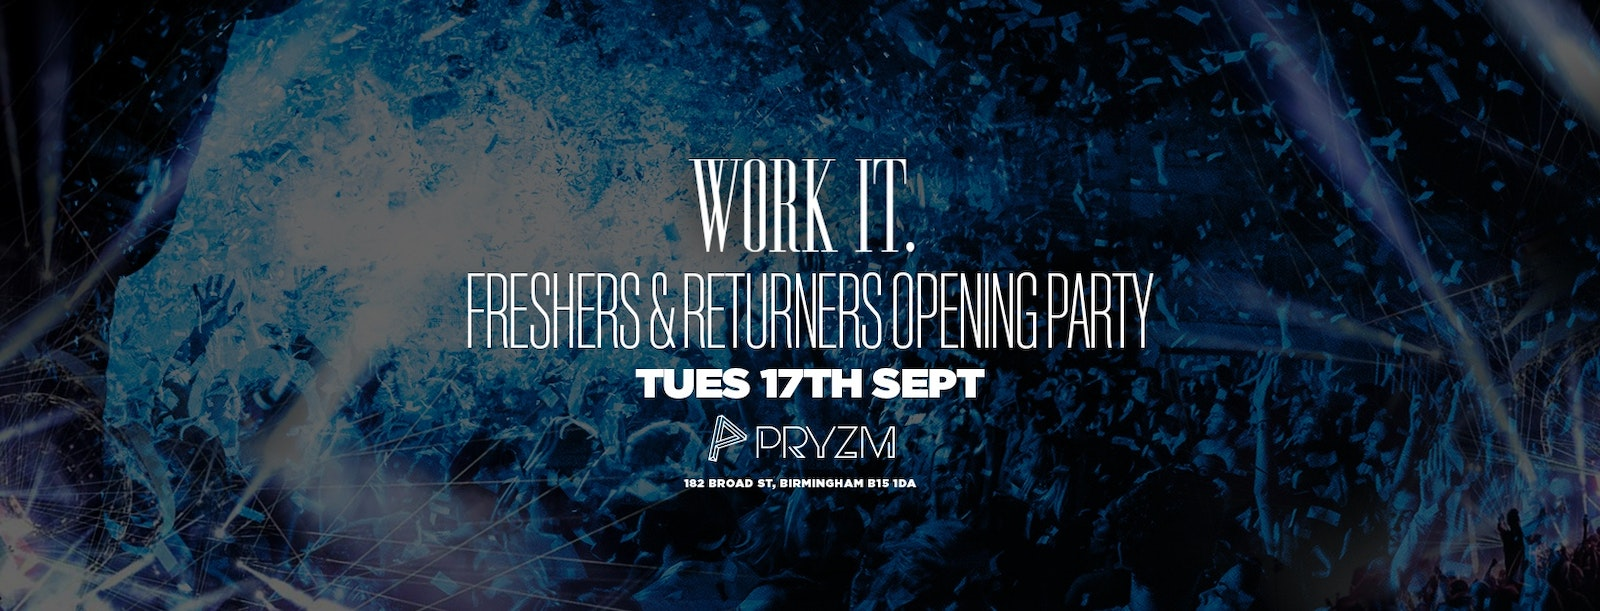 Work It. –  Birmingham Freshers & Returners Opening Party